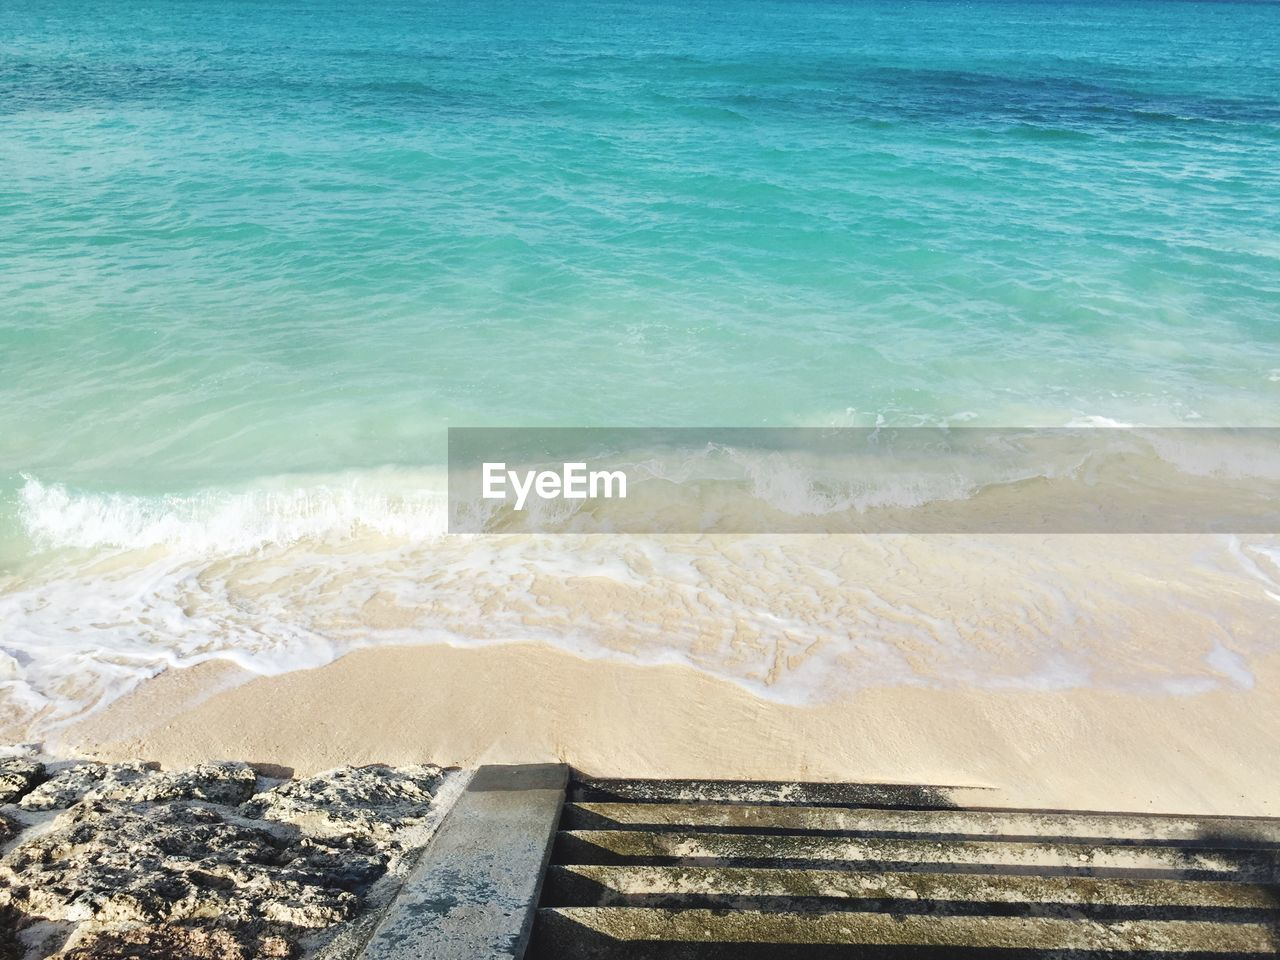 water, beach, sea, land, wave, beauty in nature, tranquility, motion, nature, aquatic sport, scenics - nature, sport, no people, tranquil scene, day, sand, idyllic, outdoors, power in nature, turquoise colored